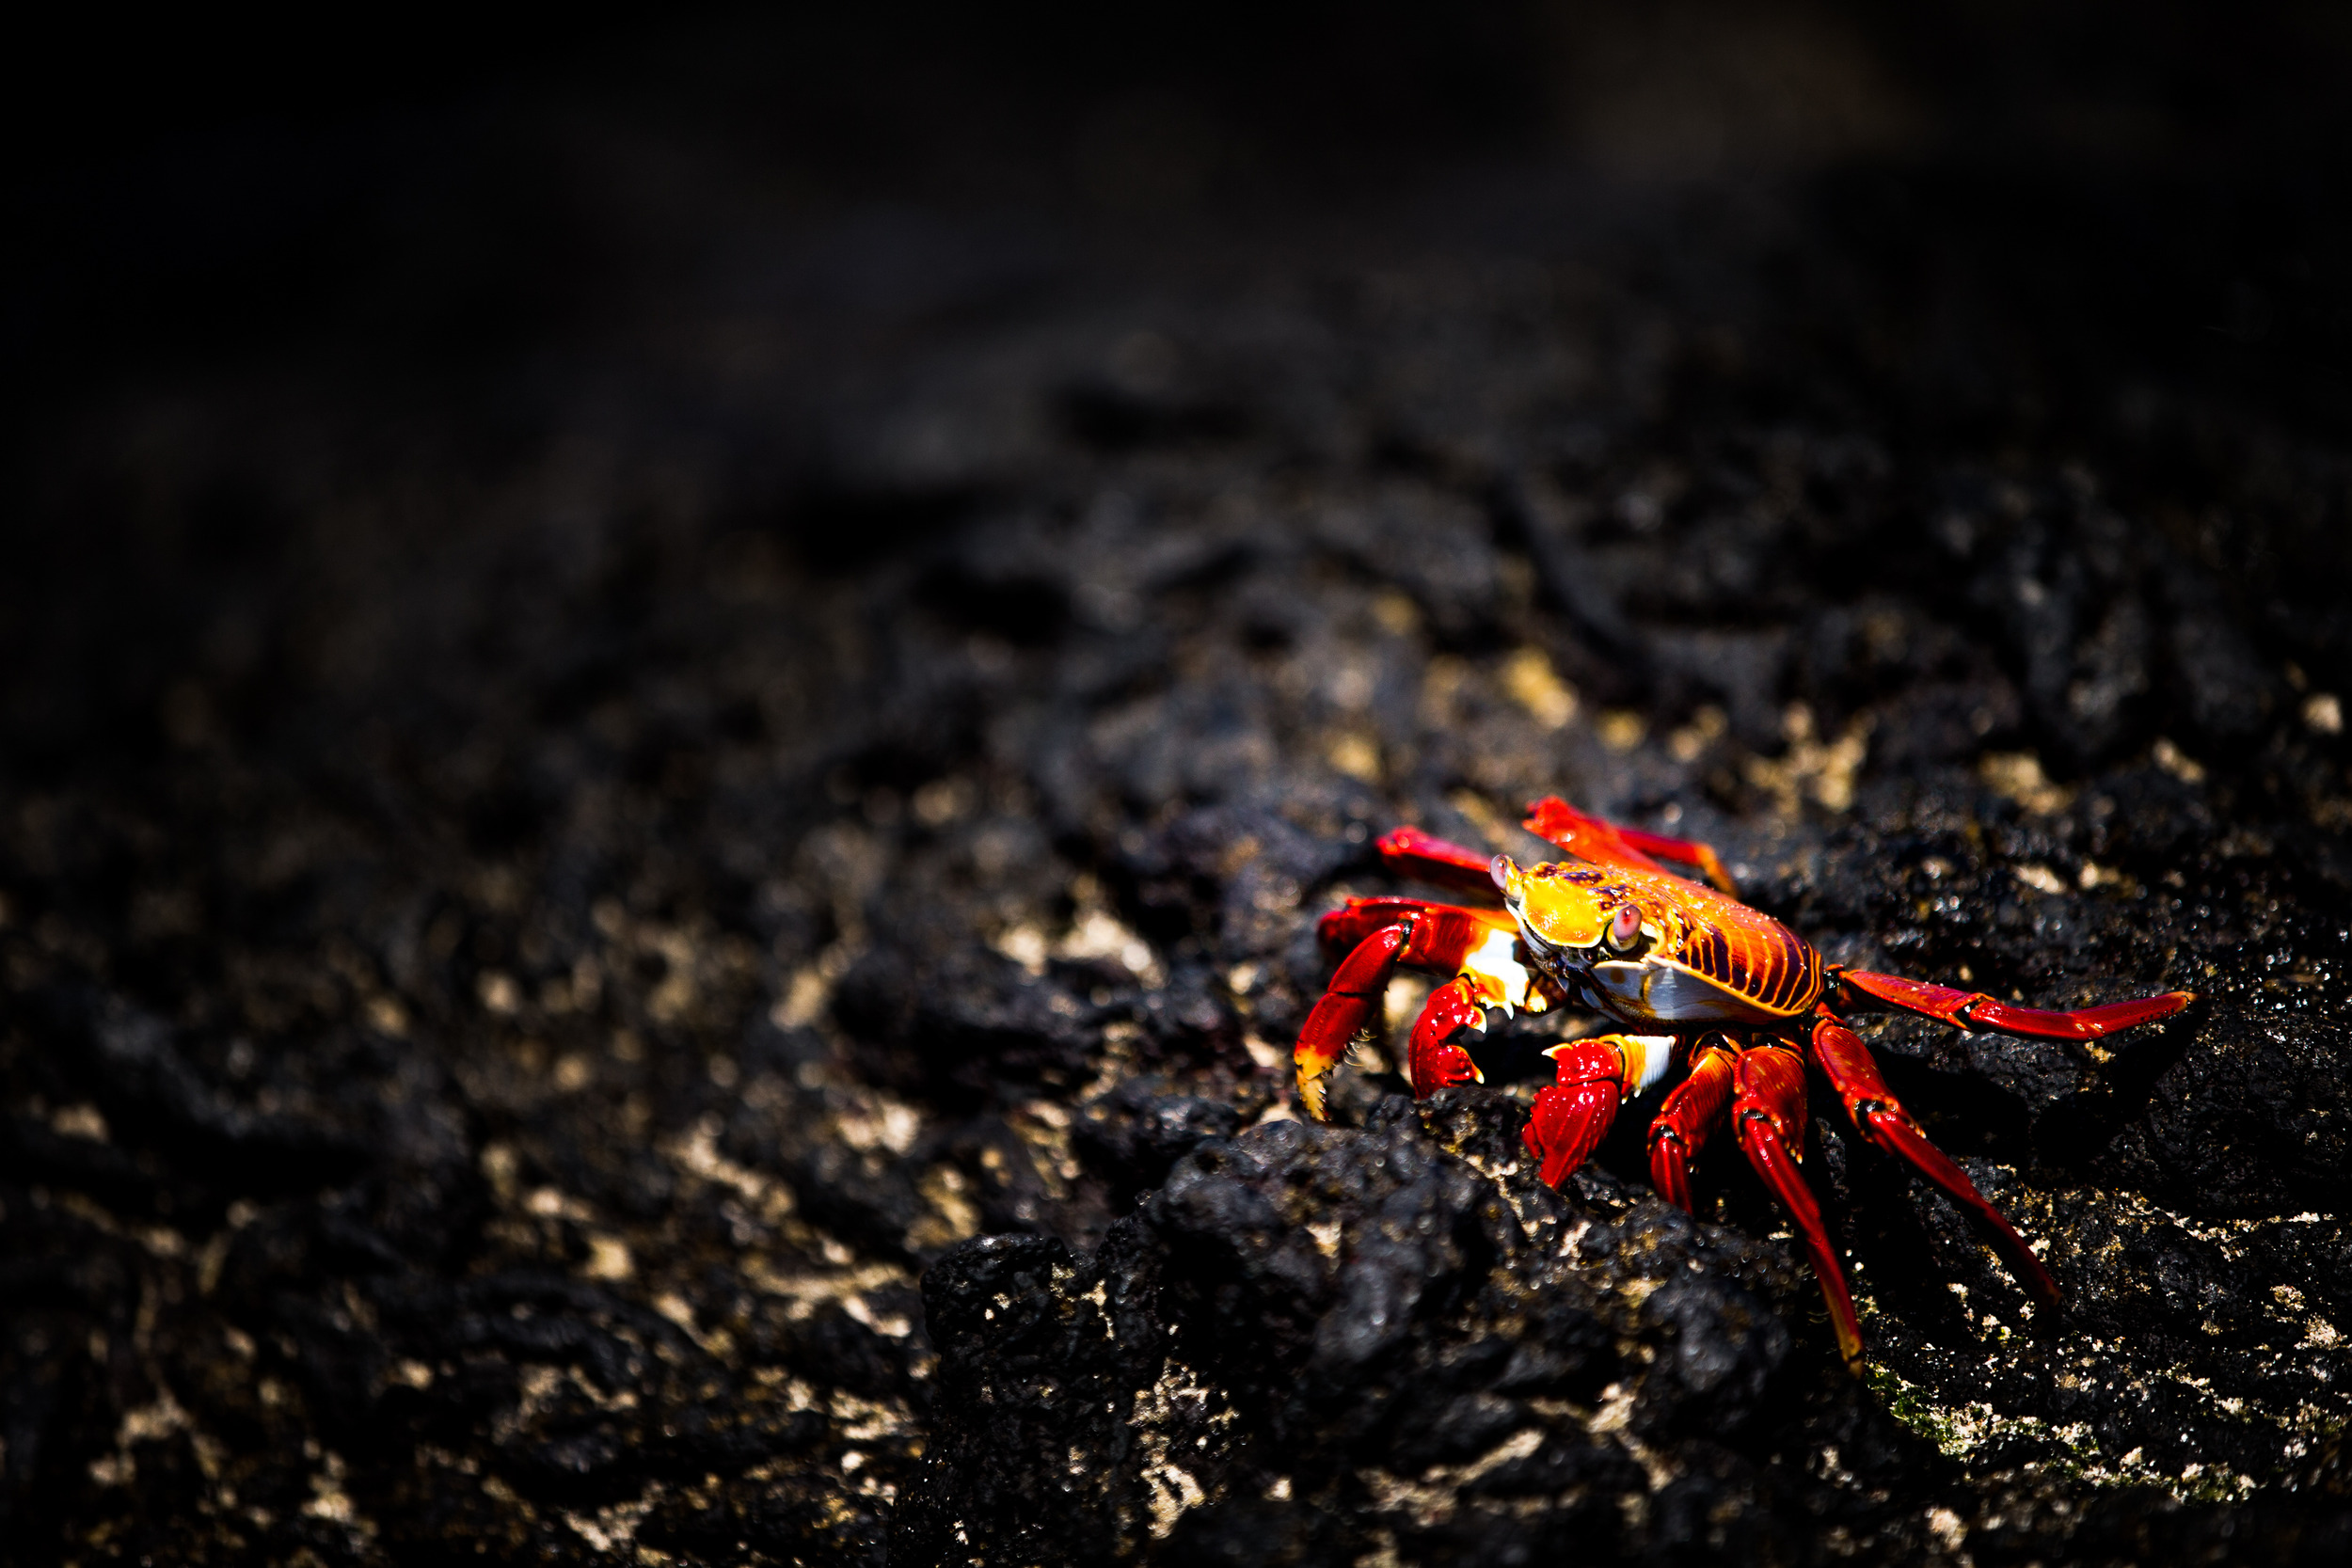 Crabe rouge - Iles des Galapagos - Equateur